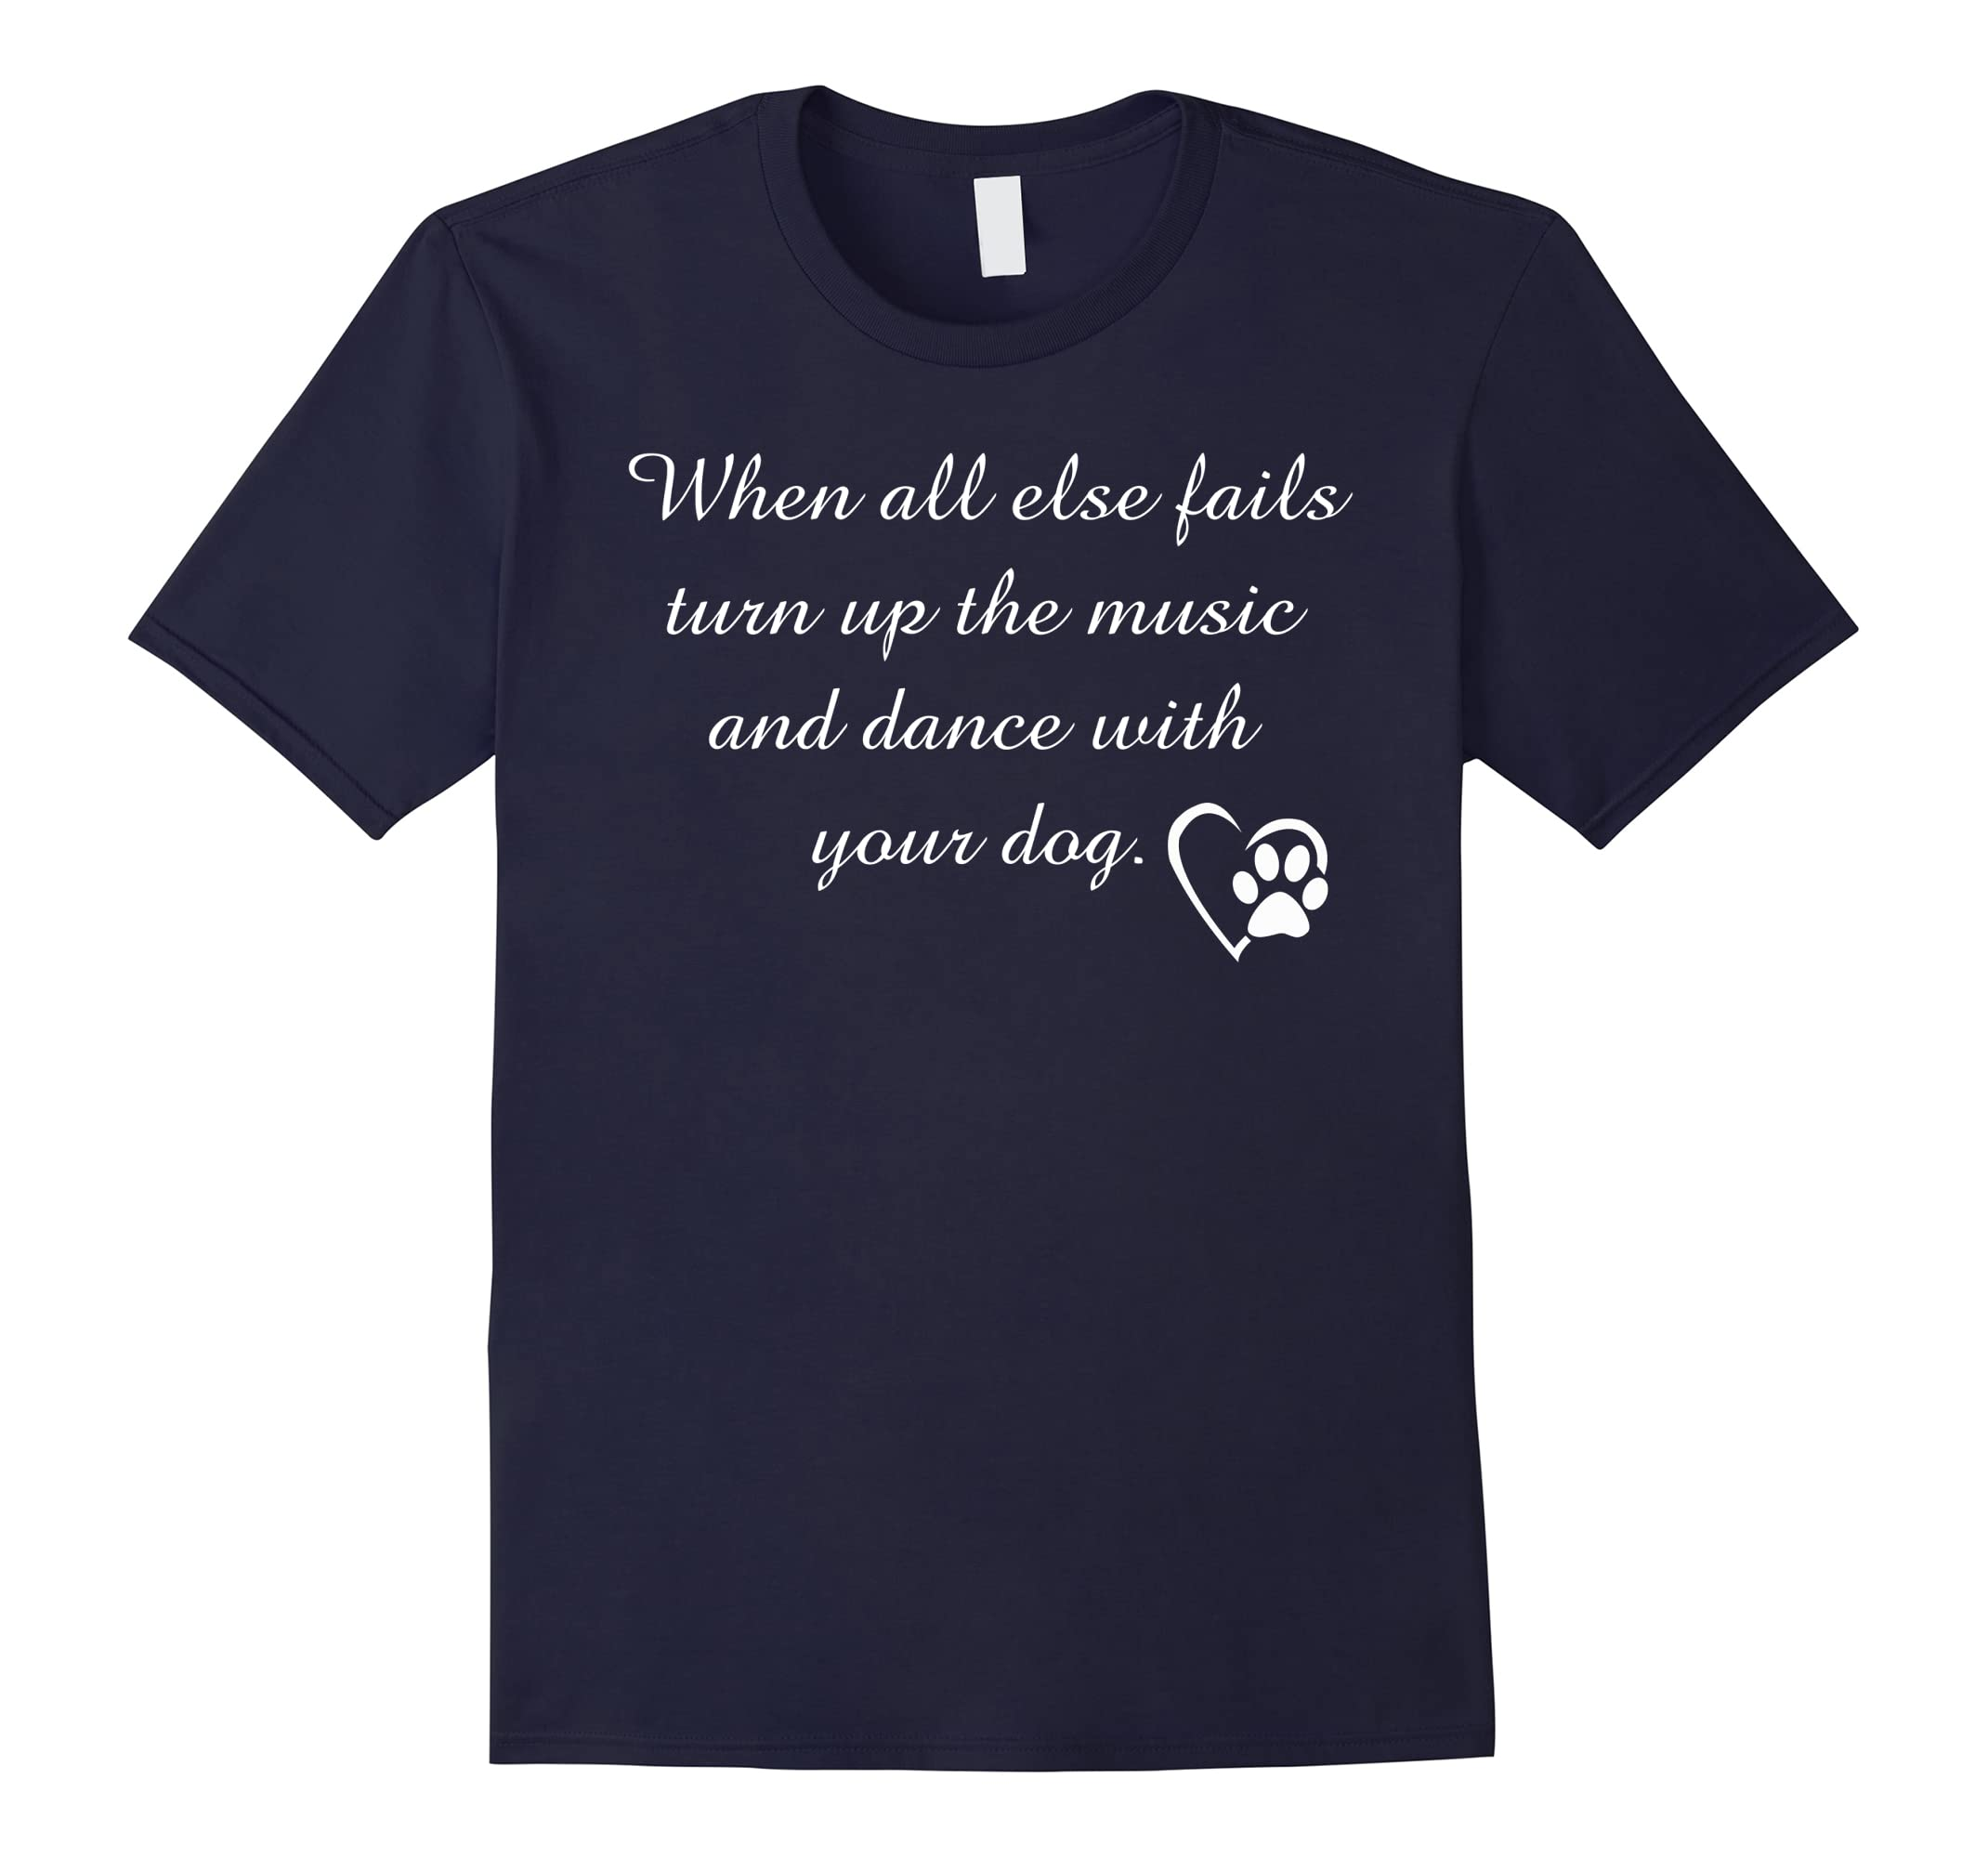 When all else fails turn up the music and dance with your do-ah my shirt one gift